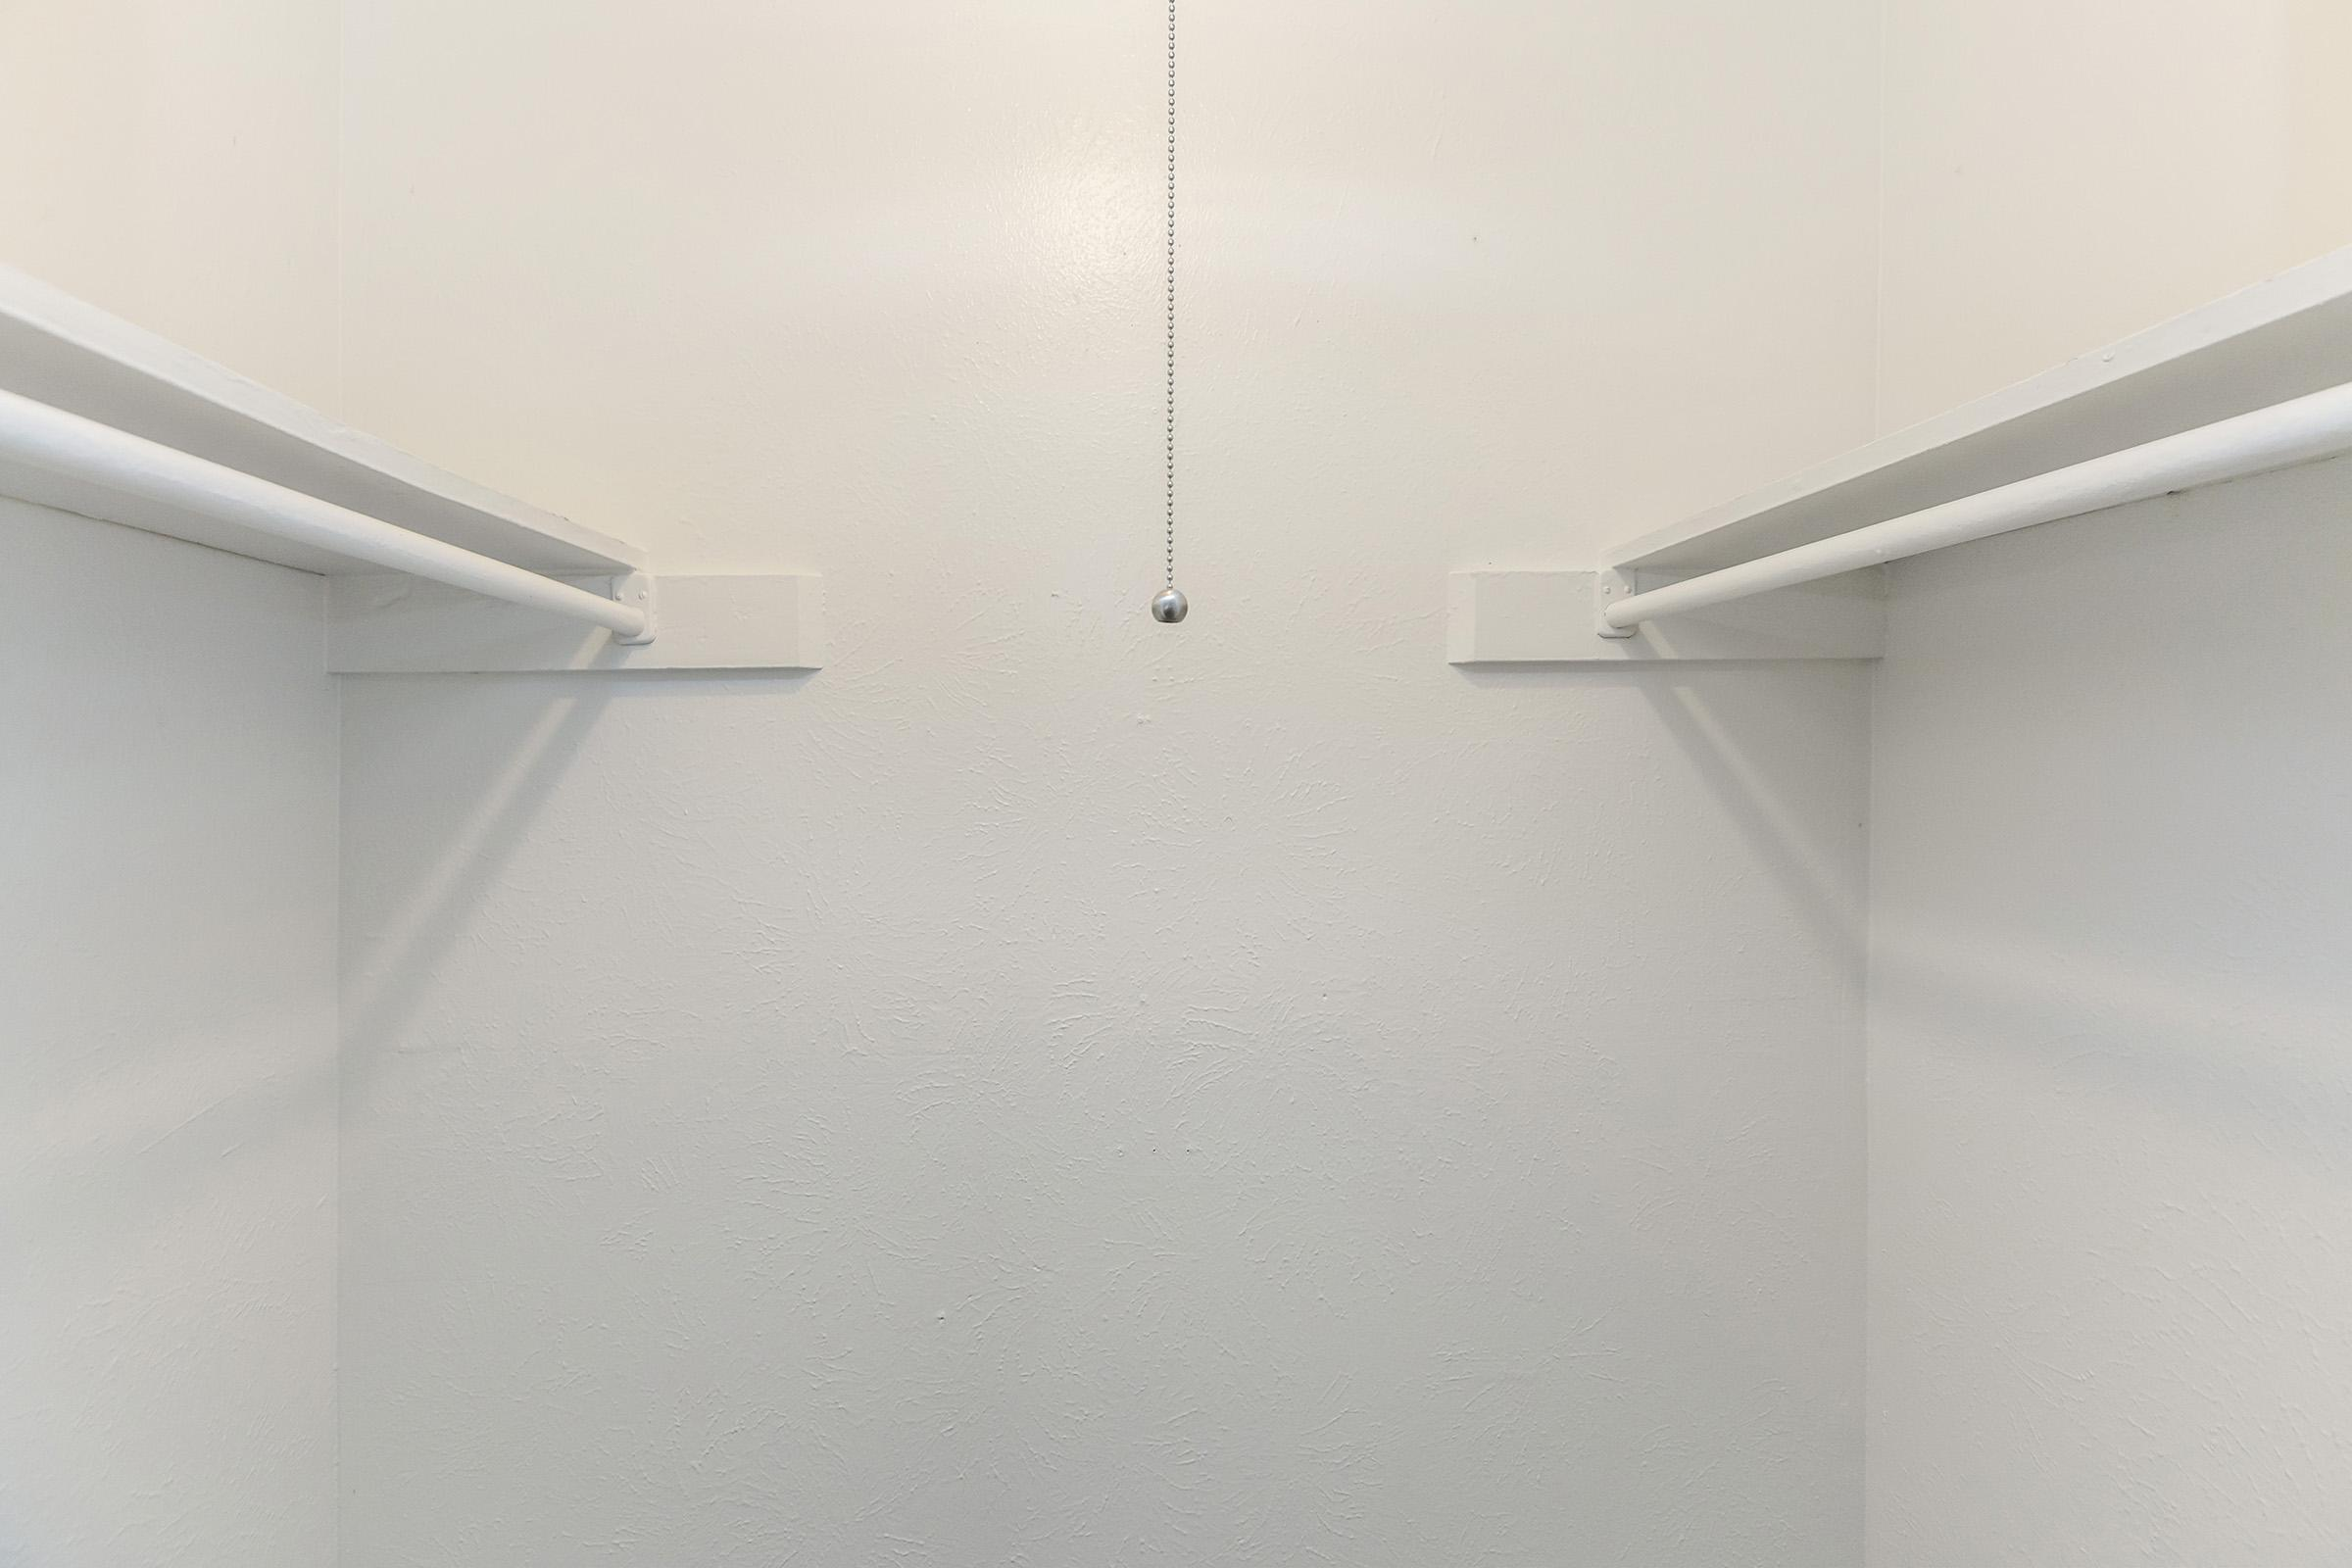 a close up of a white wall